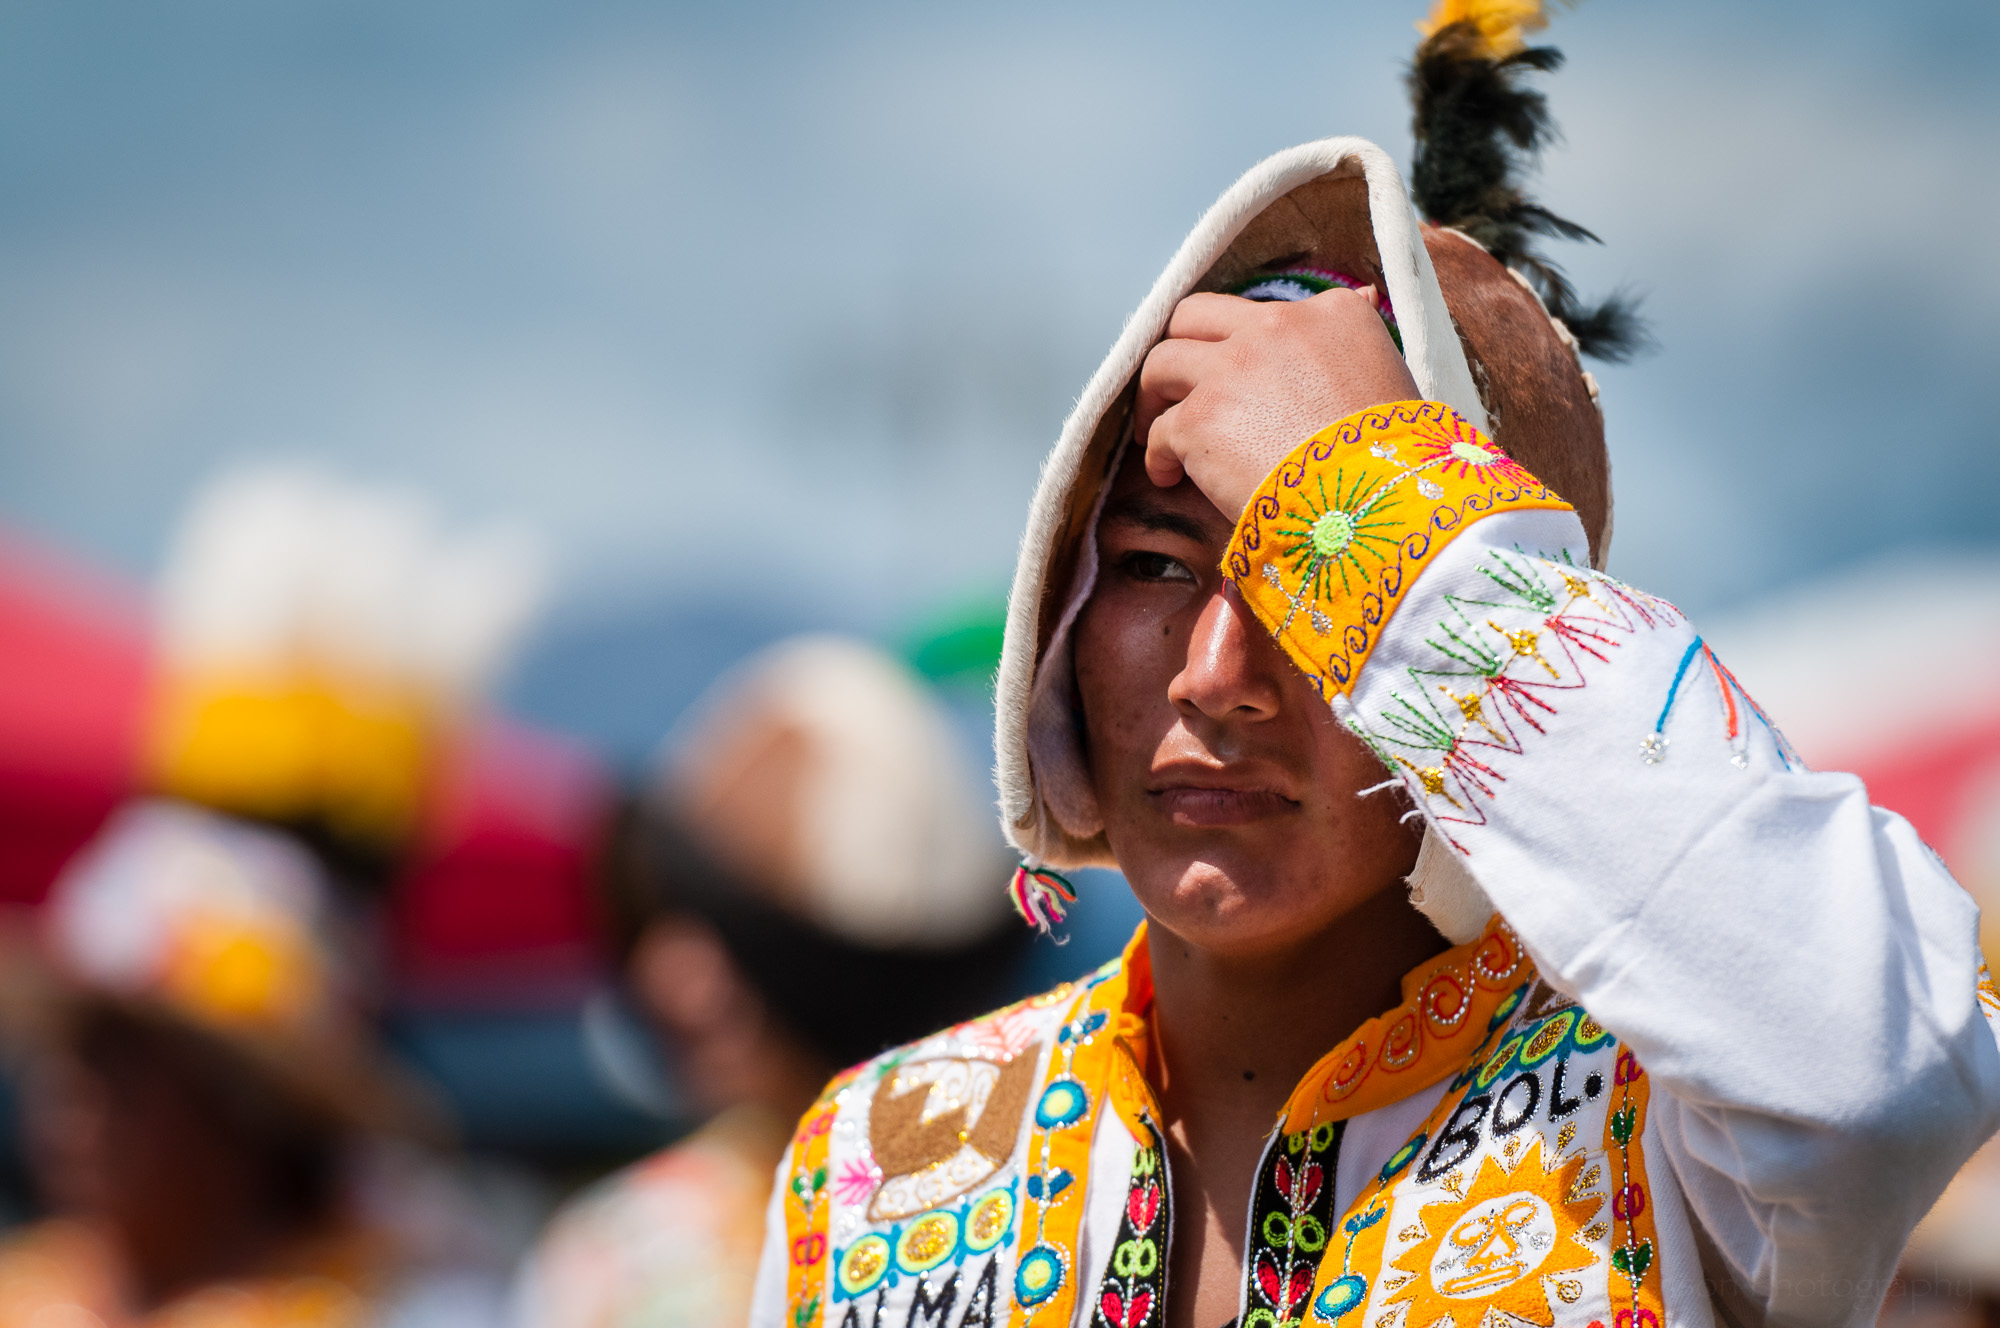 Another performer from Fraternidad Alma Boliviana after performing a Tinkus dance.